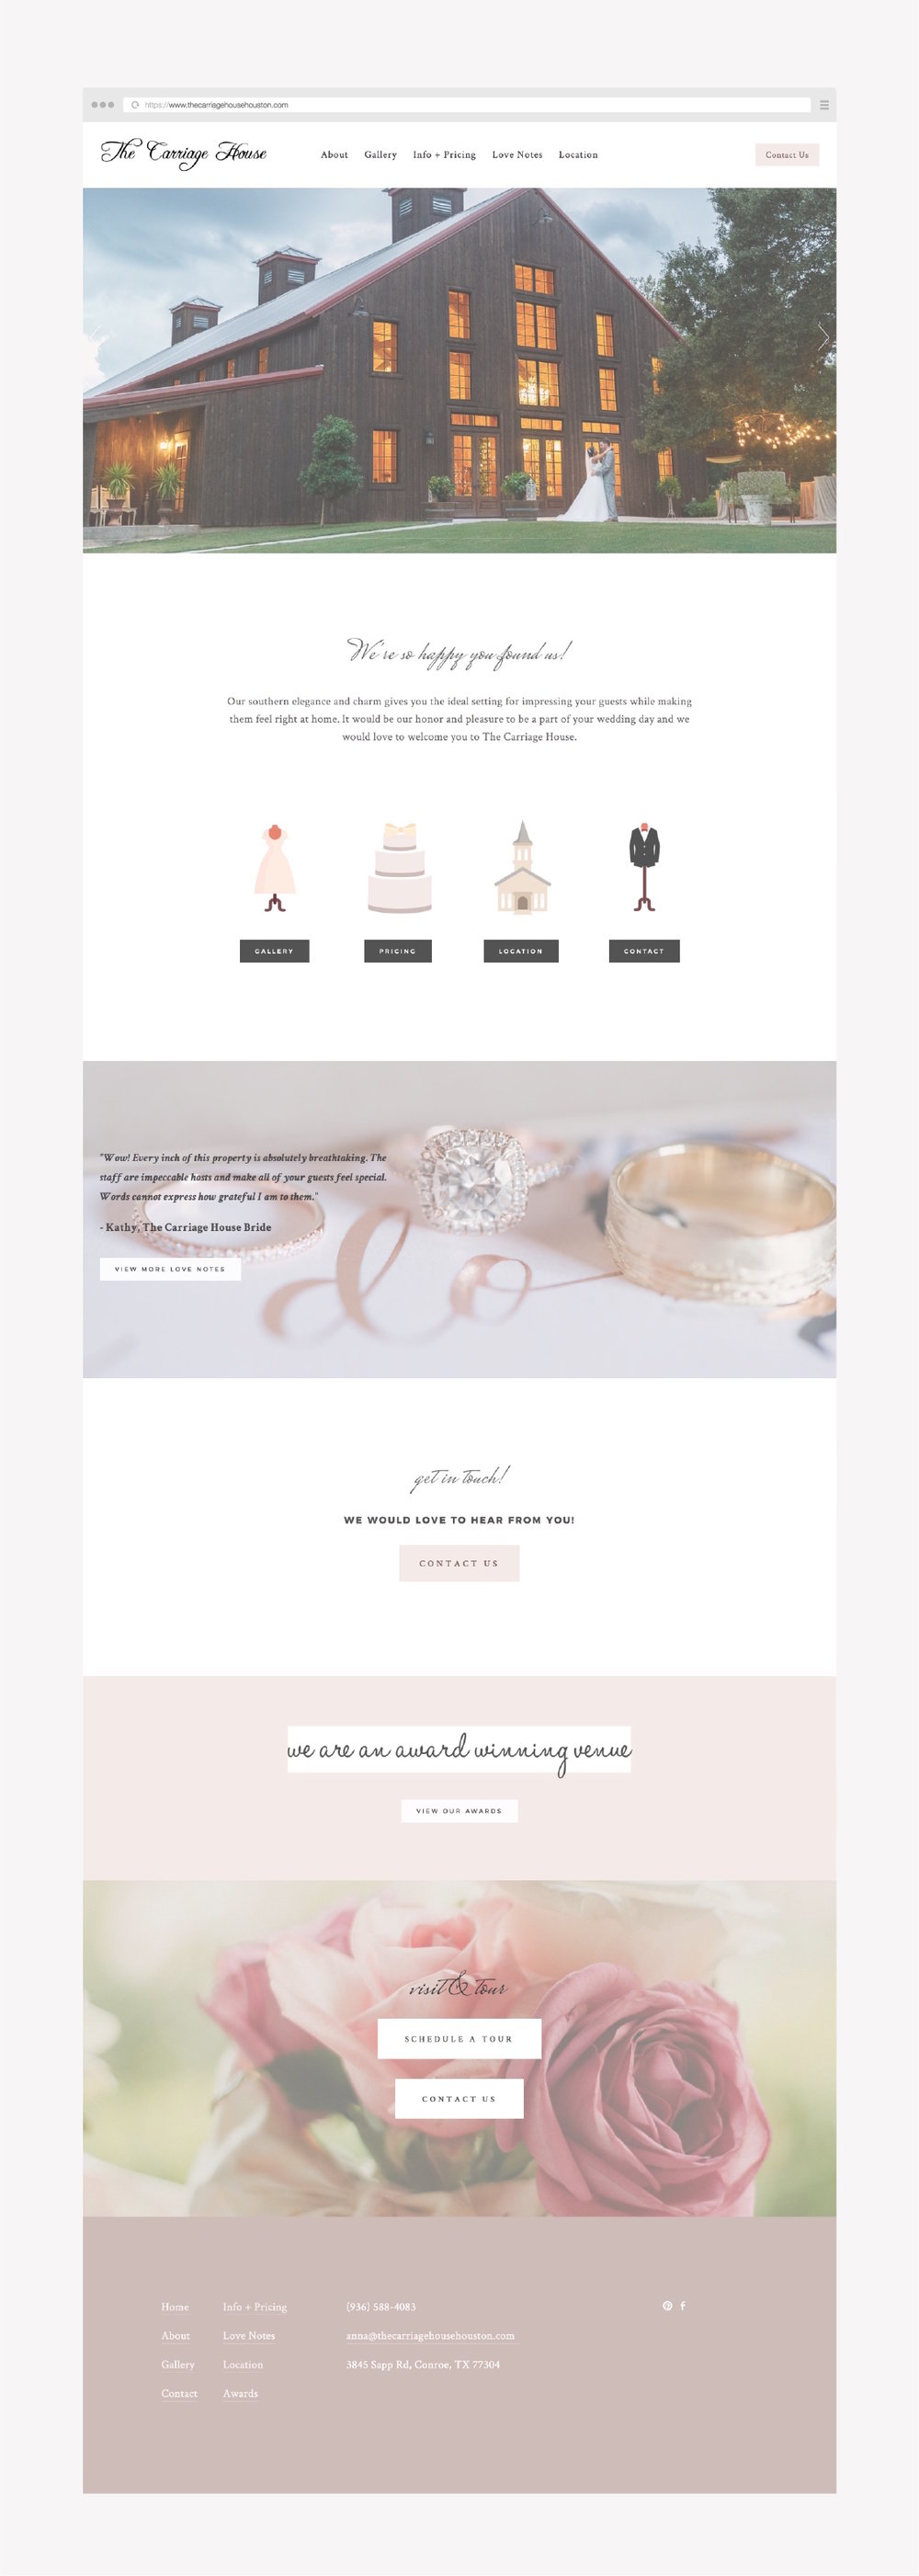 squarespace example website - wedding venue vendor.jpg